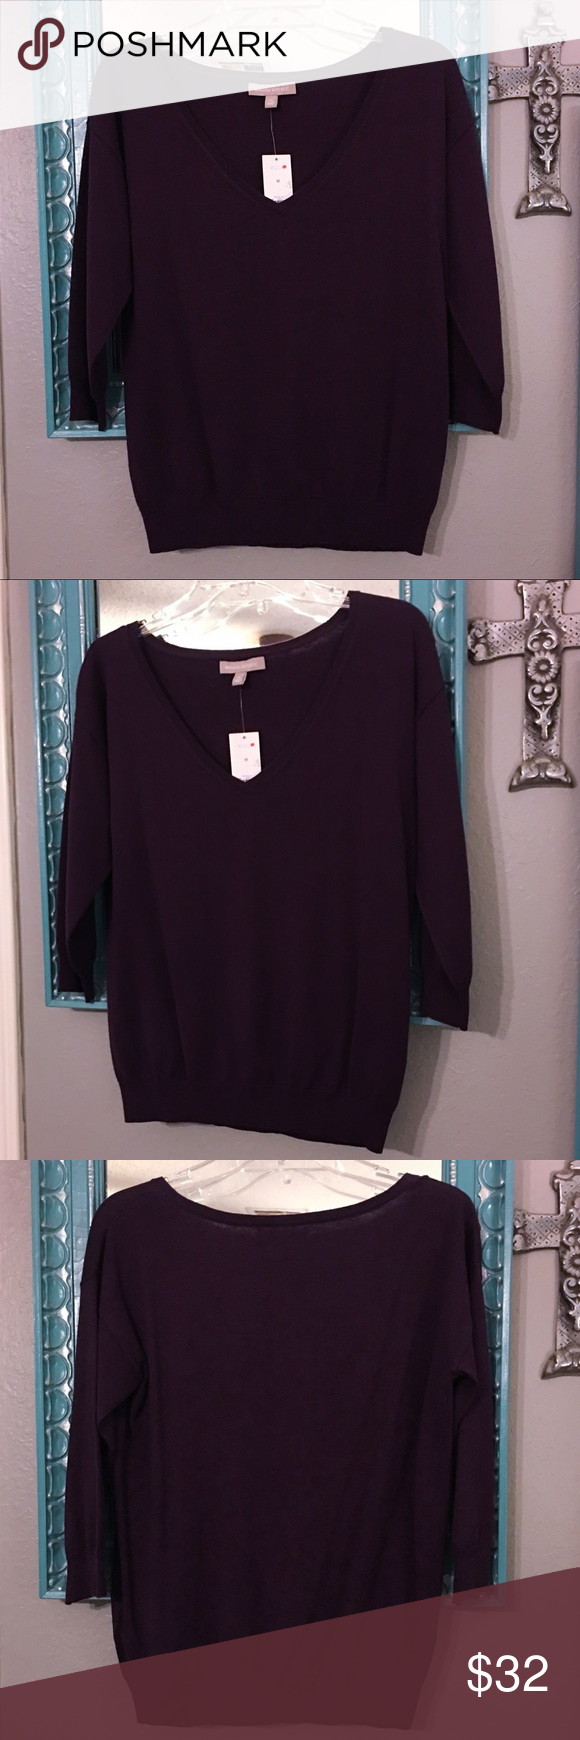 NWT Banana Republic Silk Cotton 3/4 Sleeve Sweater NWT Banana Republic Silk Cotton 3/4 Sleeve Sweater. Size M. Brand new with tag! Deep plum color. Gorgeous! Silk/cotton/poly blend material. Super soft! Smoke free home. Banana Republic Sweaters V-Necks